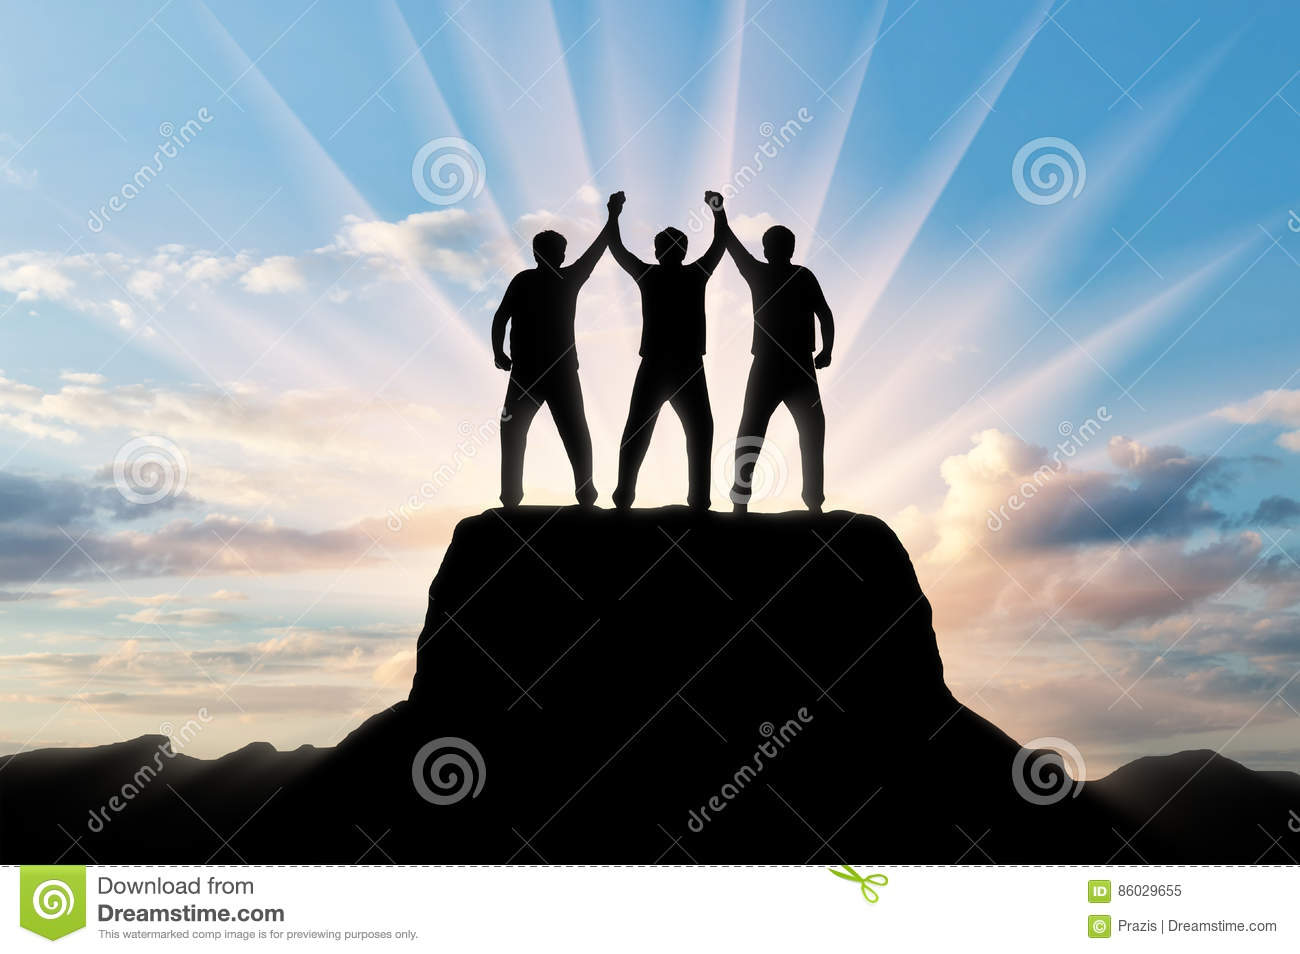 Silhouette of happy three climbers on the top